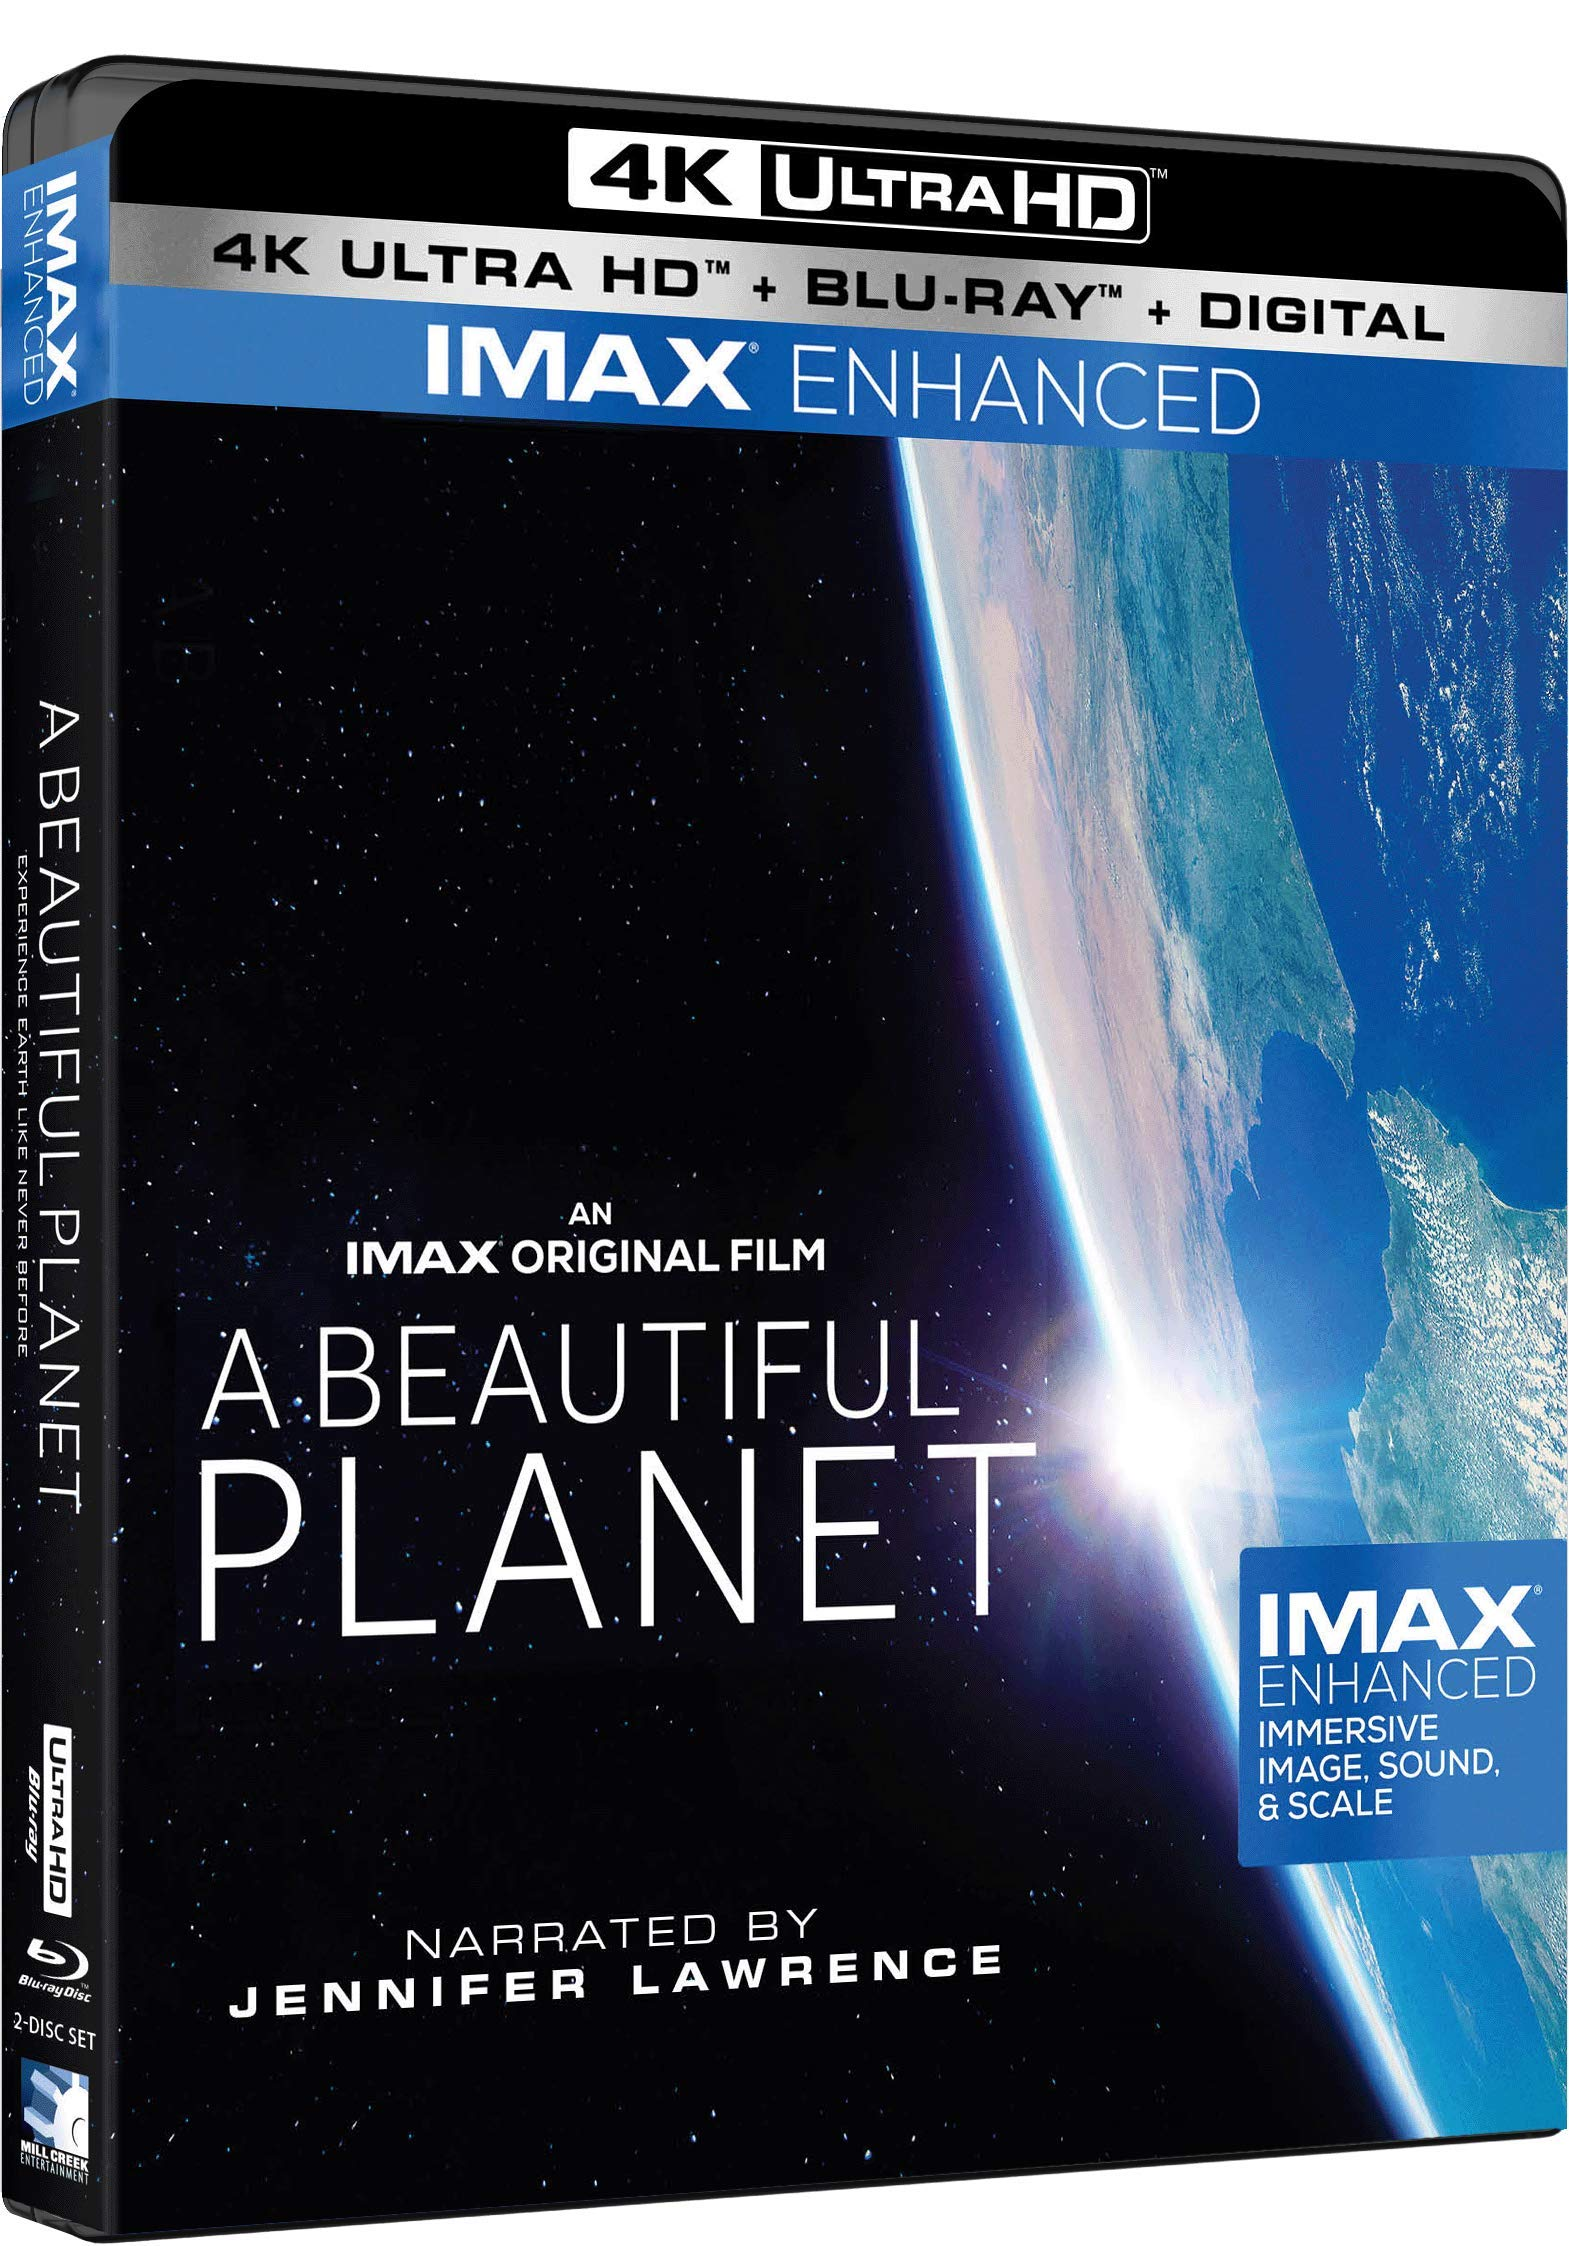 4K Blu-ray : The Beautiful Planet (With Blu-ray, 4K Mastering, 2 Pack)